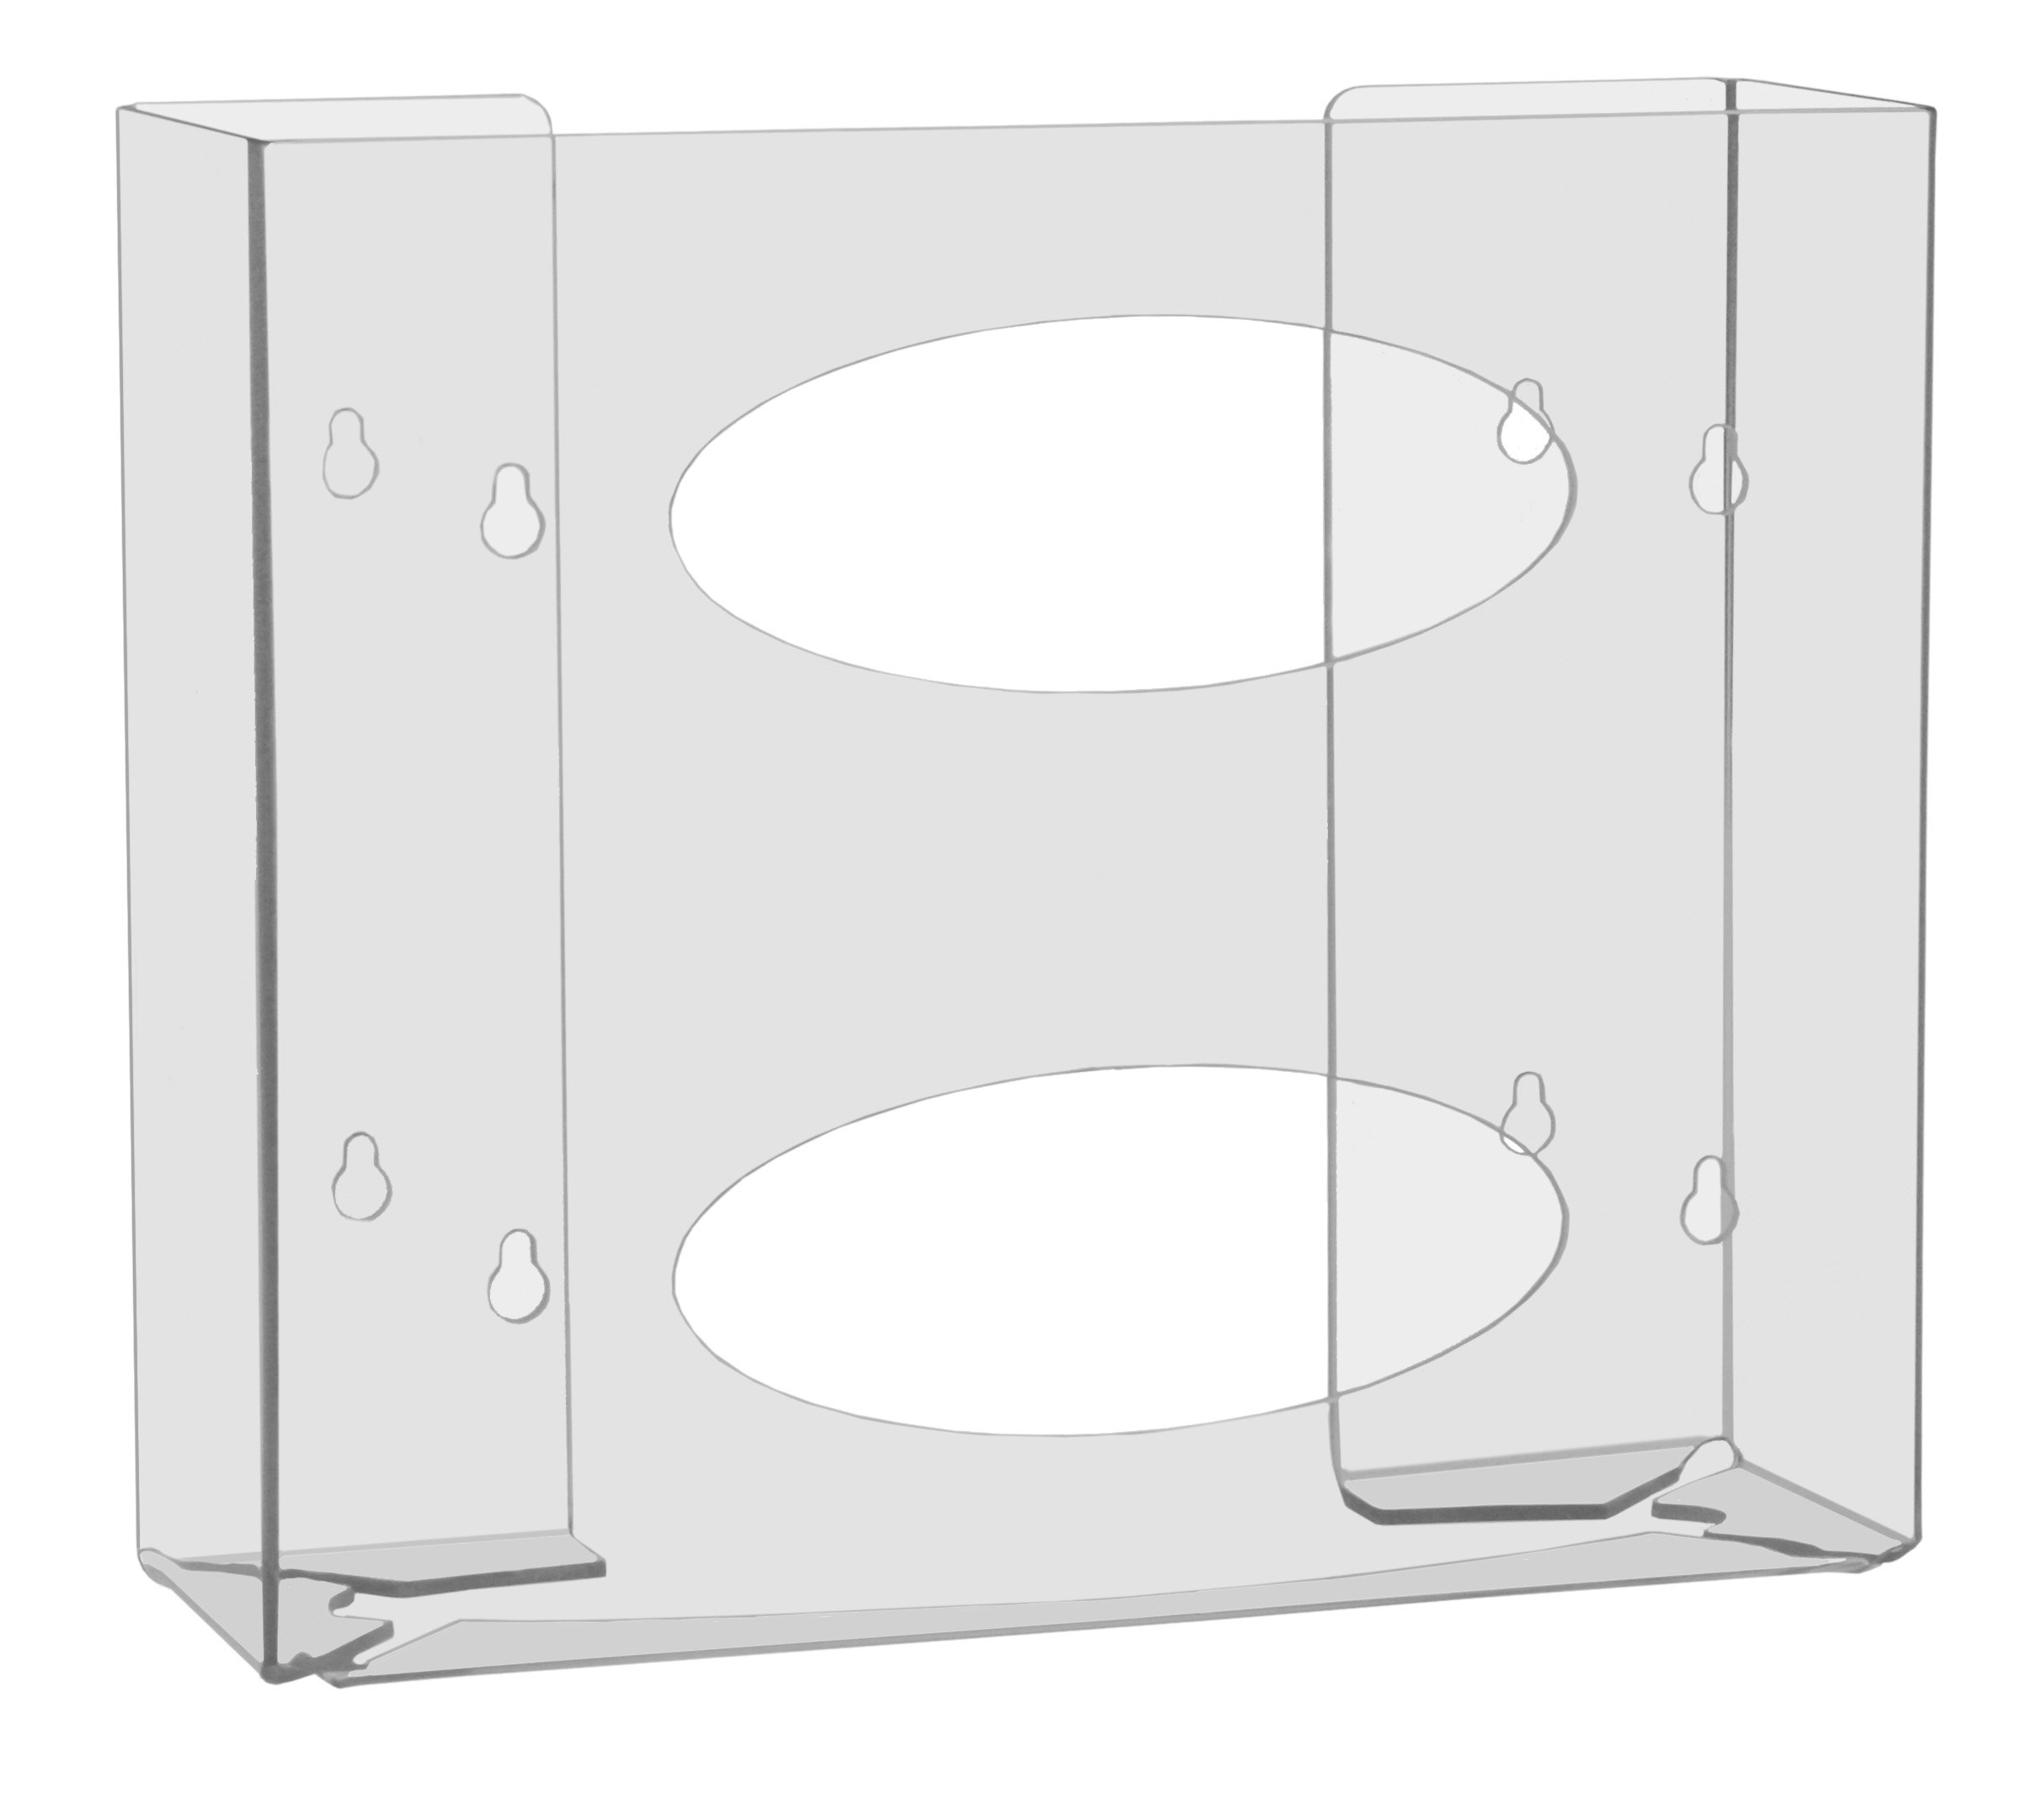 TrippNT 51144 Double Two Faced Glove Box Holder, 11'' W x 10'' H x 4'' D, Clear